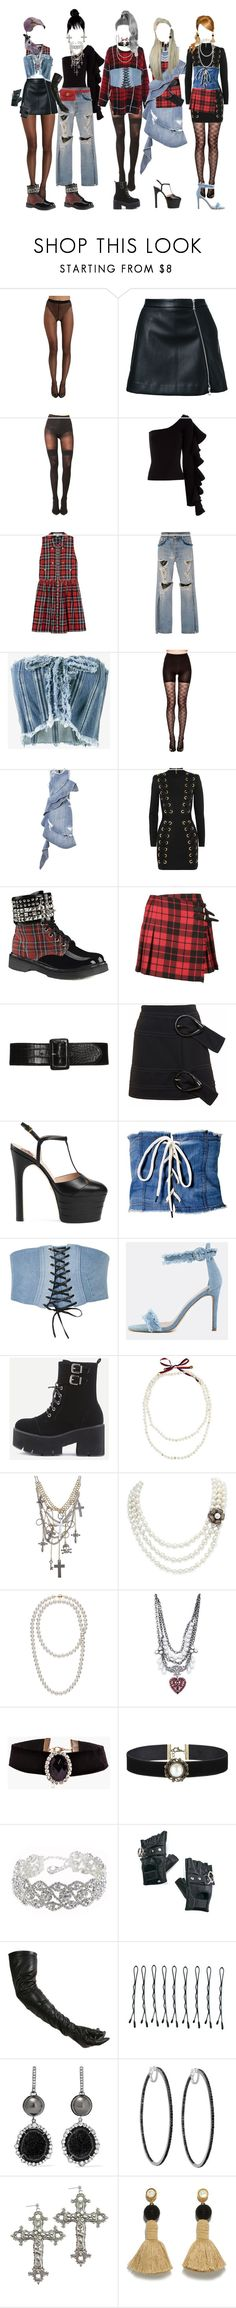 """[ live ] G-1 _ E.A.T."" by xxzodiacentertainmentxx ❤ liked on Polyvore featuring Wolford, Guild Prime, Pretty Polly, Beaufille, Elizabeth and James, UNIF, Jonathan Simkhai, Philosophy di Lorenzo Serafini, SPANX and Balmain"